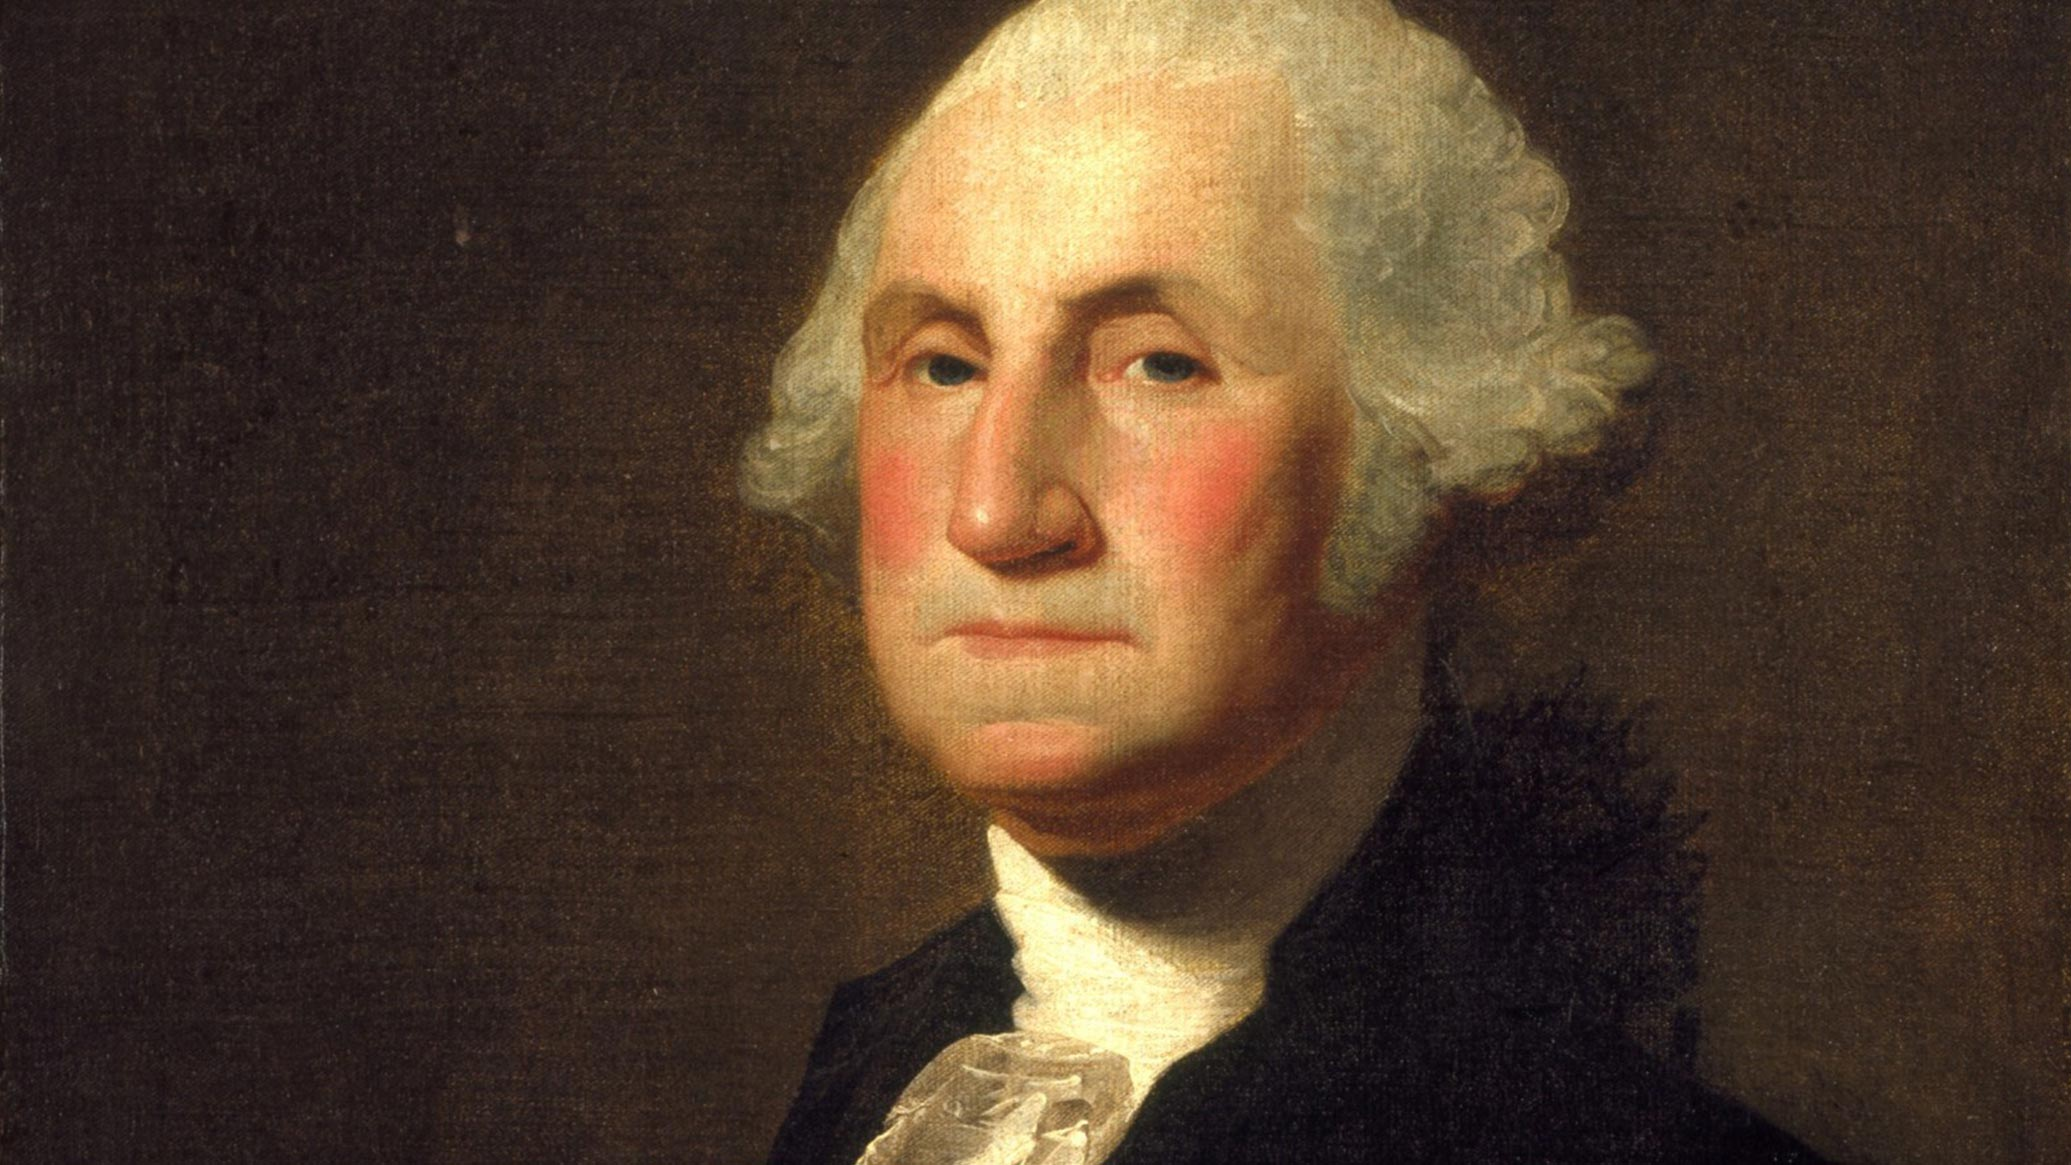 president george washington as a prophet to the united states President of the united states of america muhammad and washington may seem like an unlikely connection prophet muhammad and george washington.